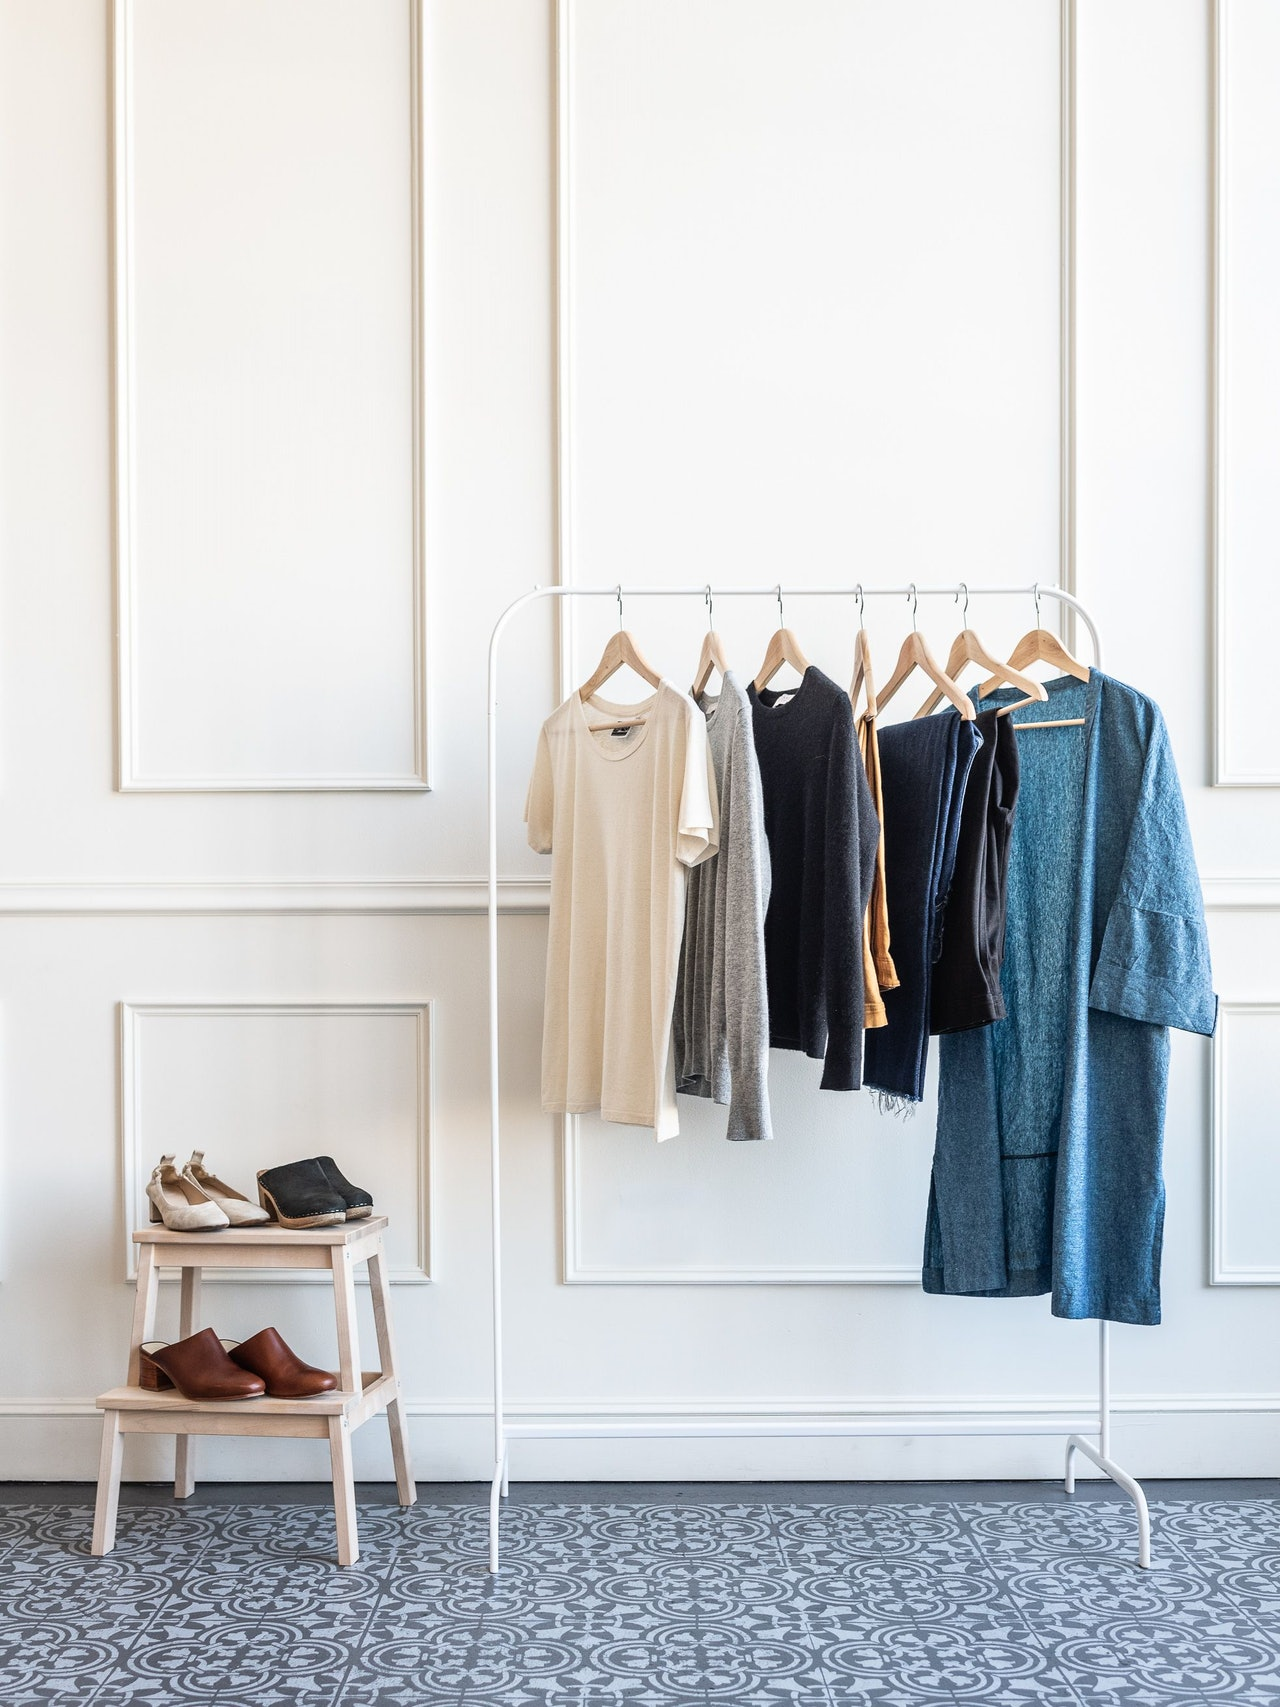 2018 Fall 10x10 Challenge and capsule Closet by Conscious by Chloé